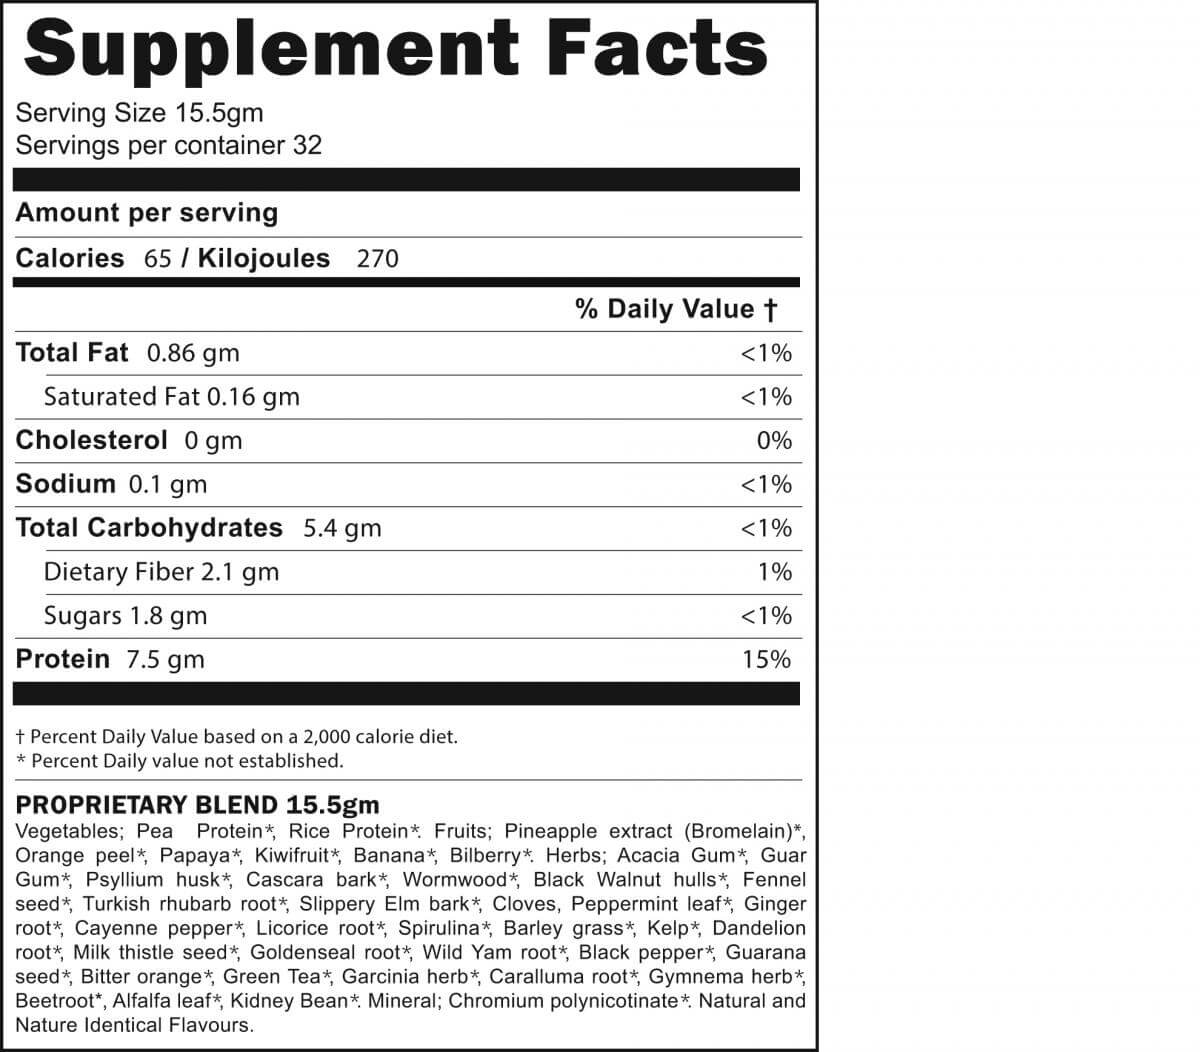 Supplement facts for BodiTune Detox n Slim protein drink